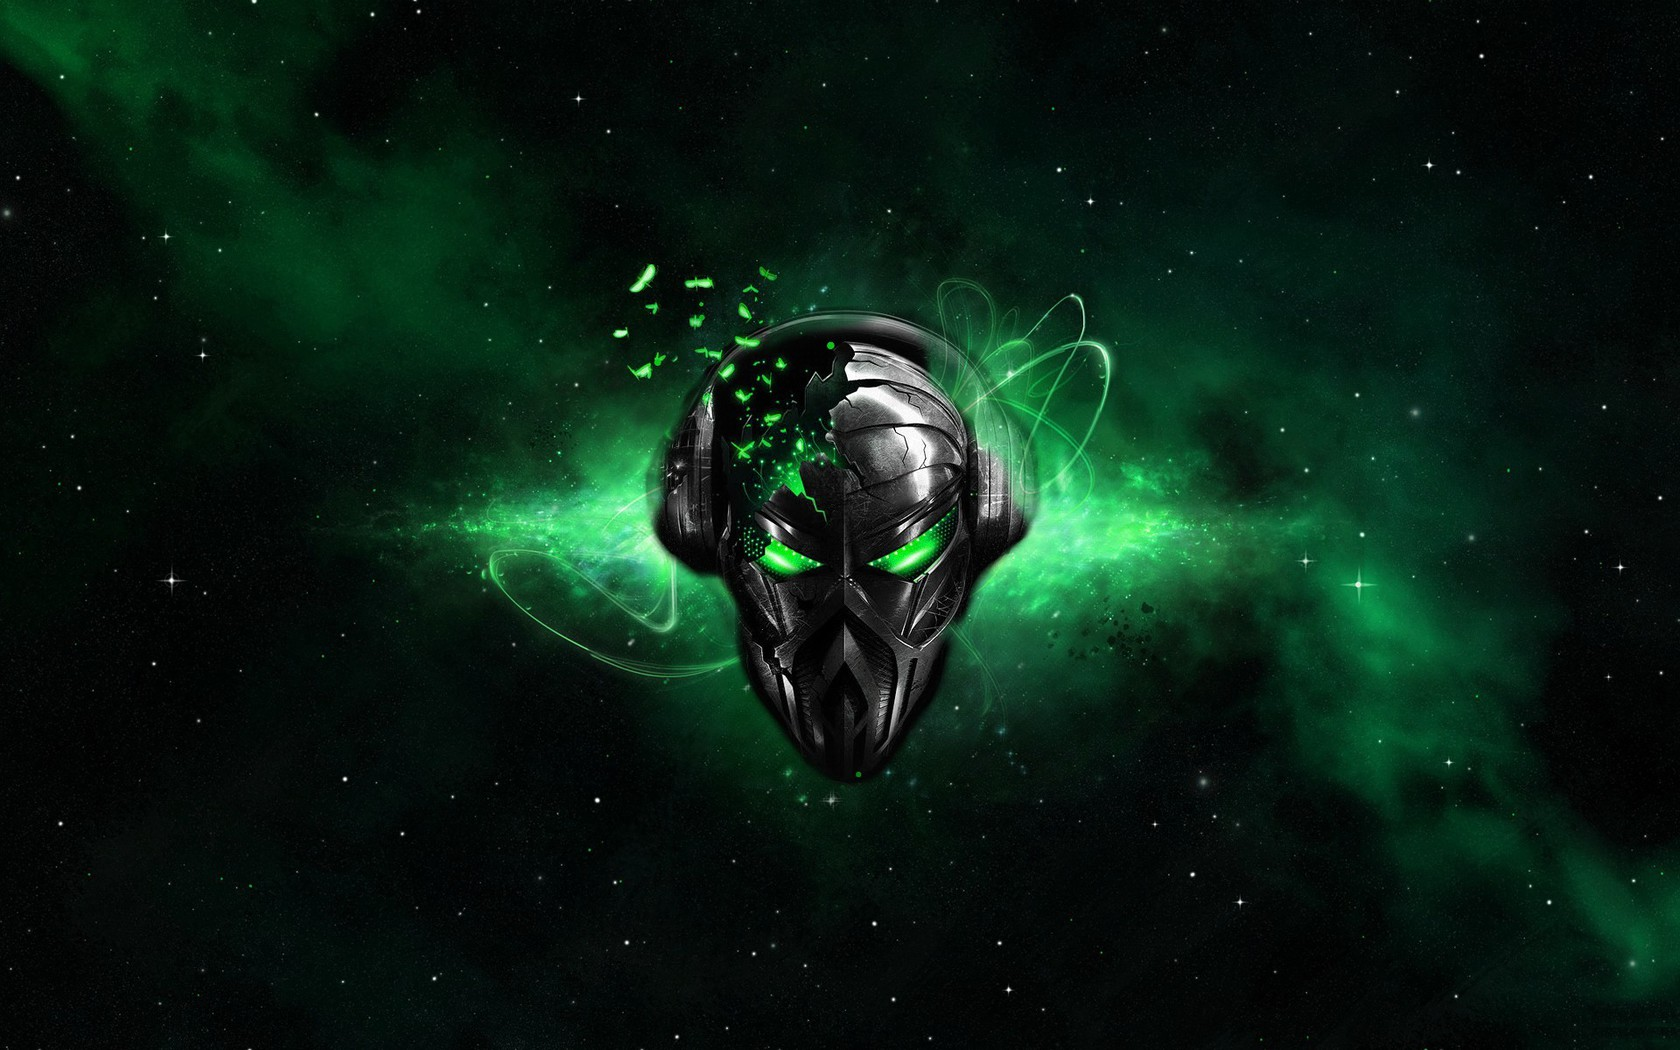 Destruction Destroyed Glowing Alienware Alien Black Background